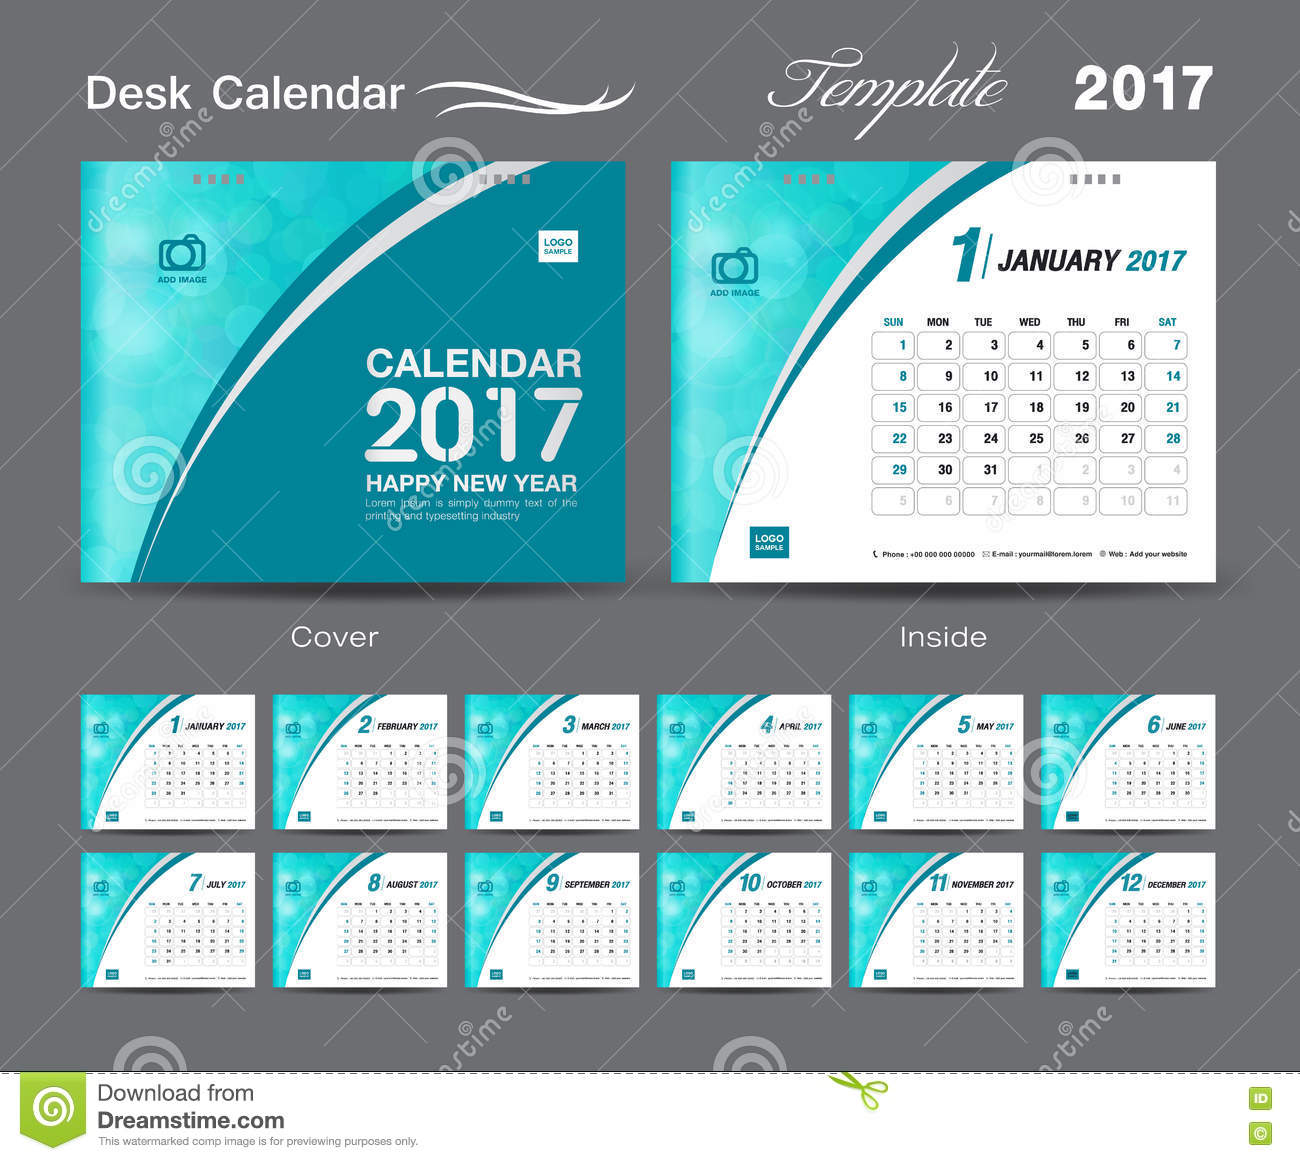 Calendar Design Photo : Desk calendar template design set cover